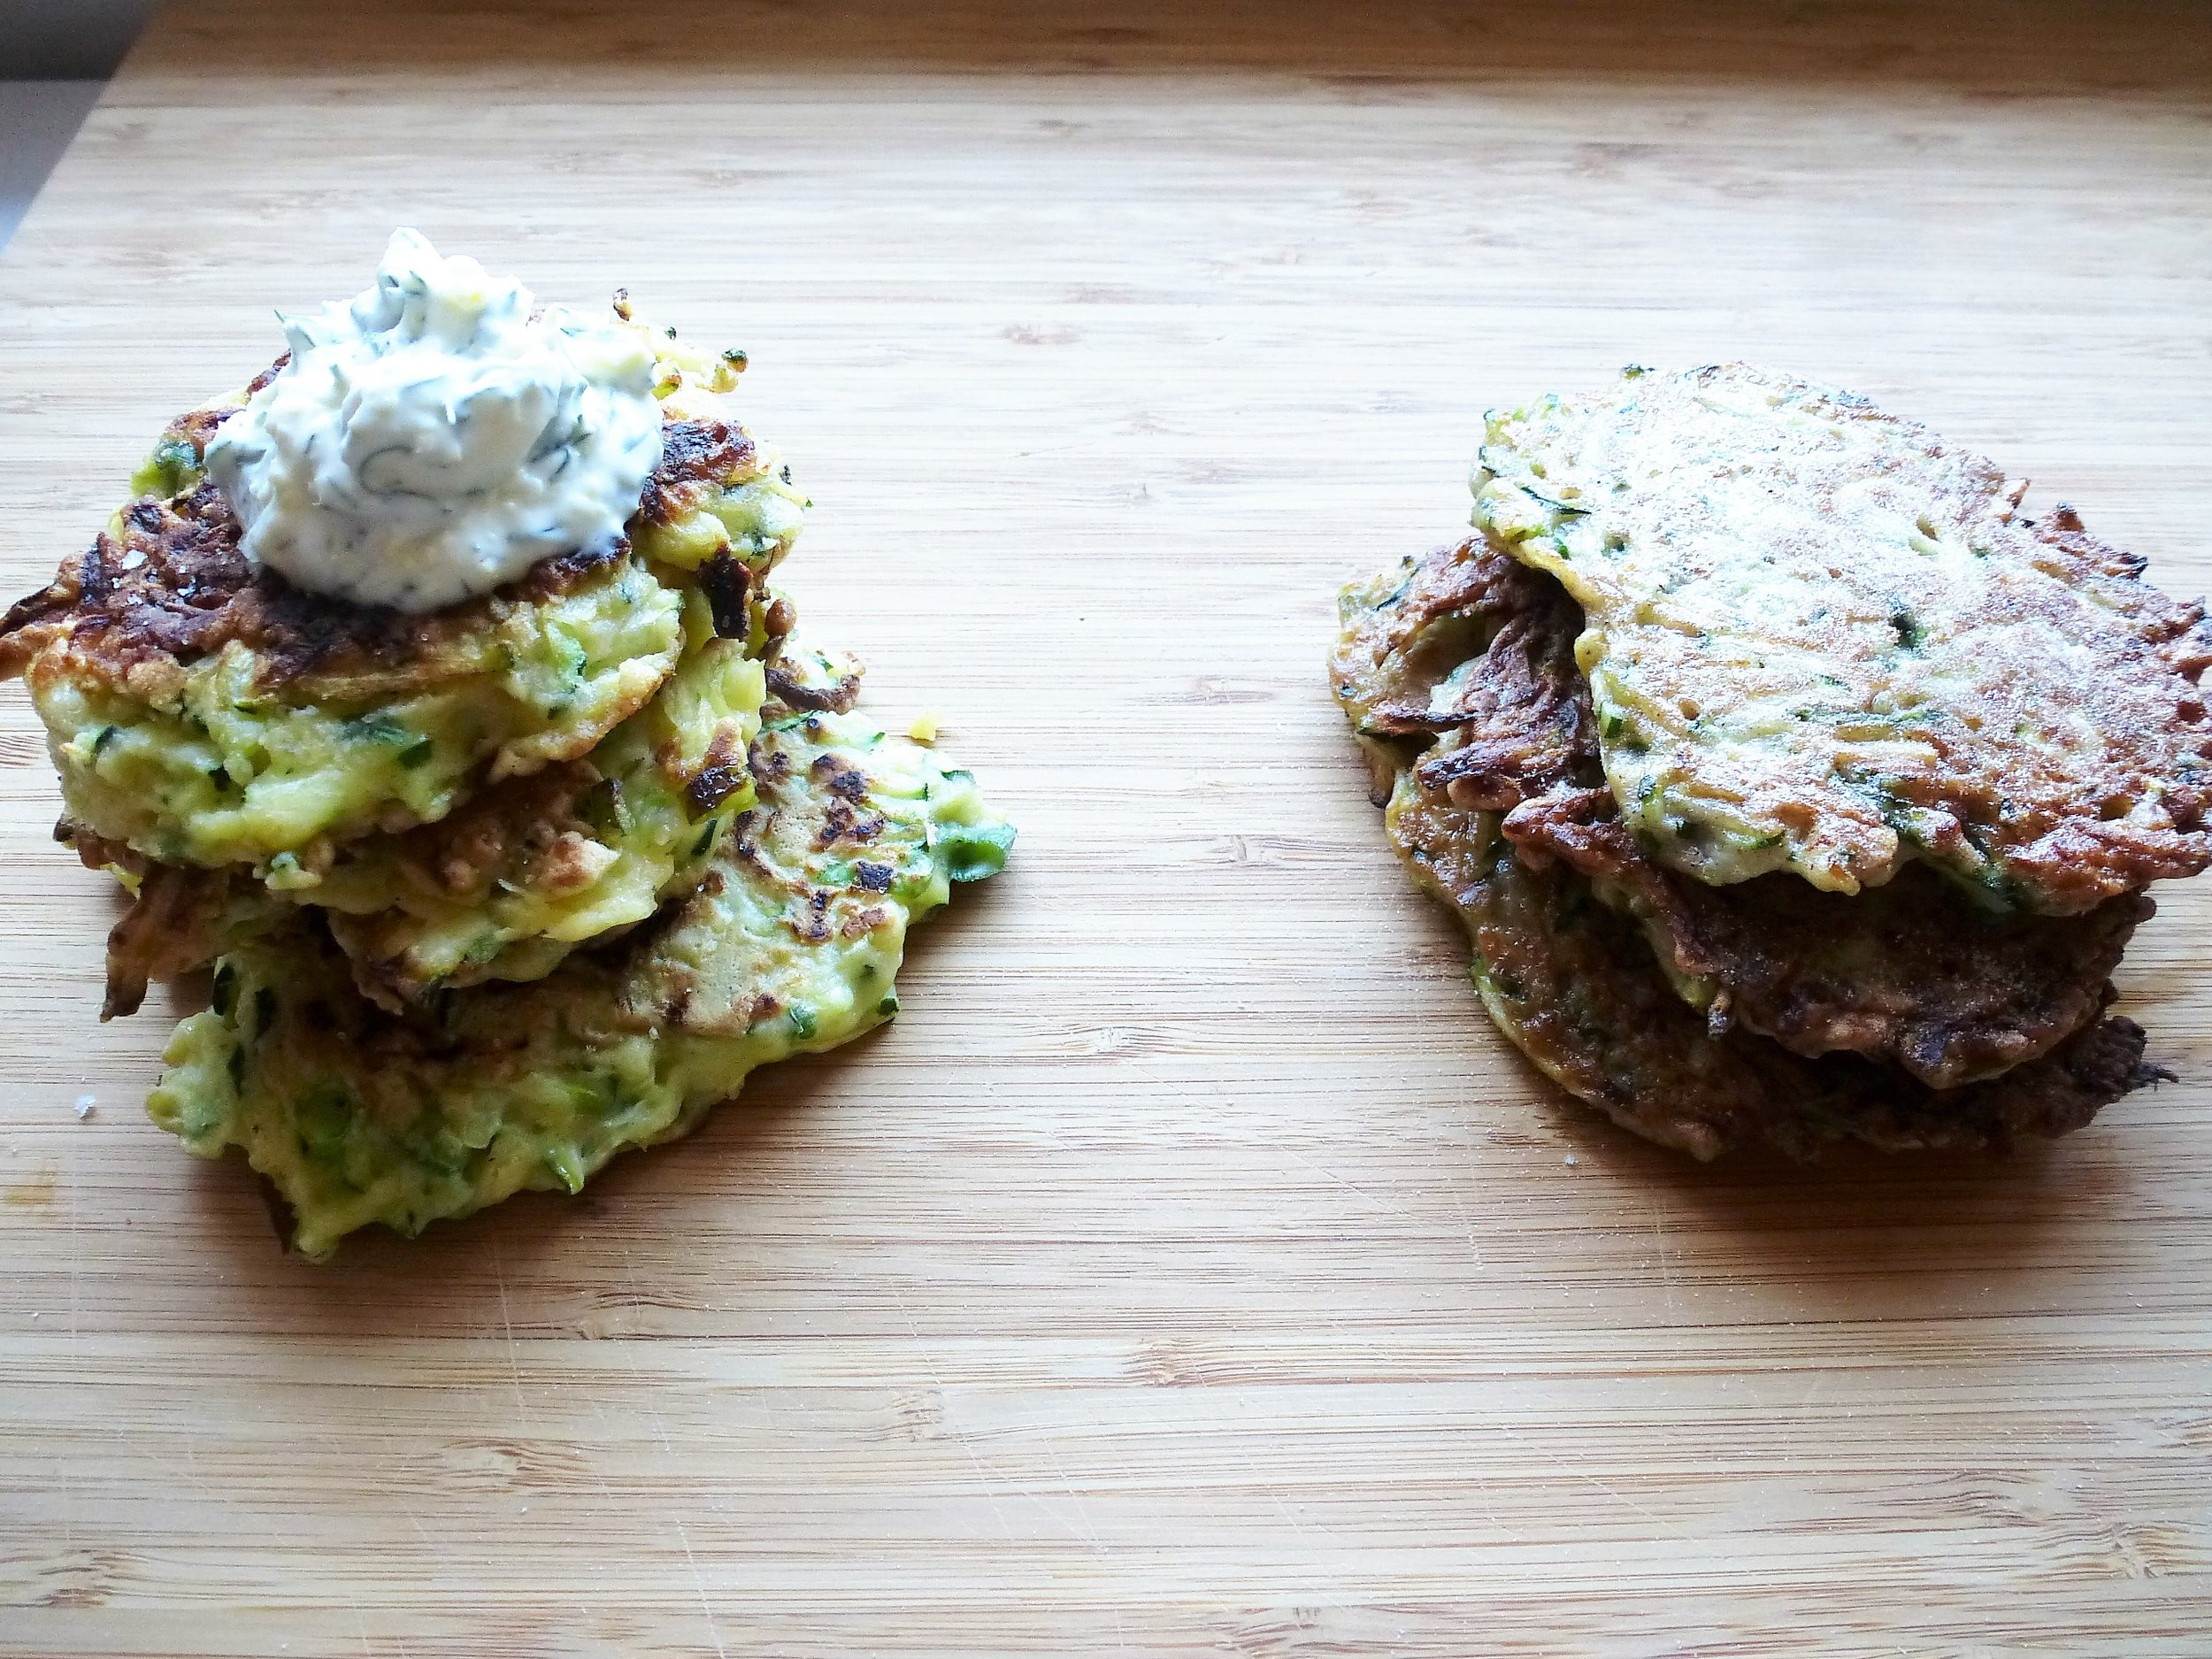 Zucchini Fritters with Lemon & Dill Crème Fraîche (left)and Cardamom & Cinnamon (right)